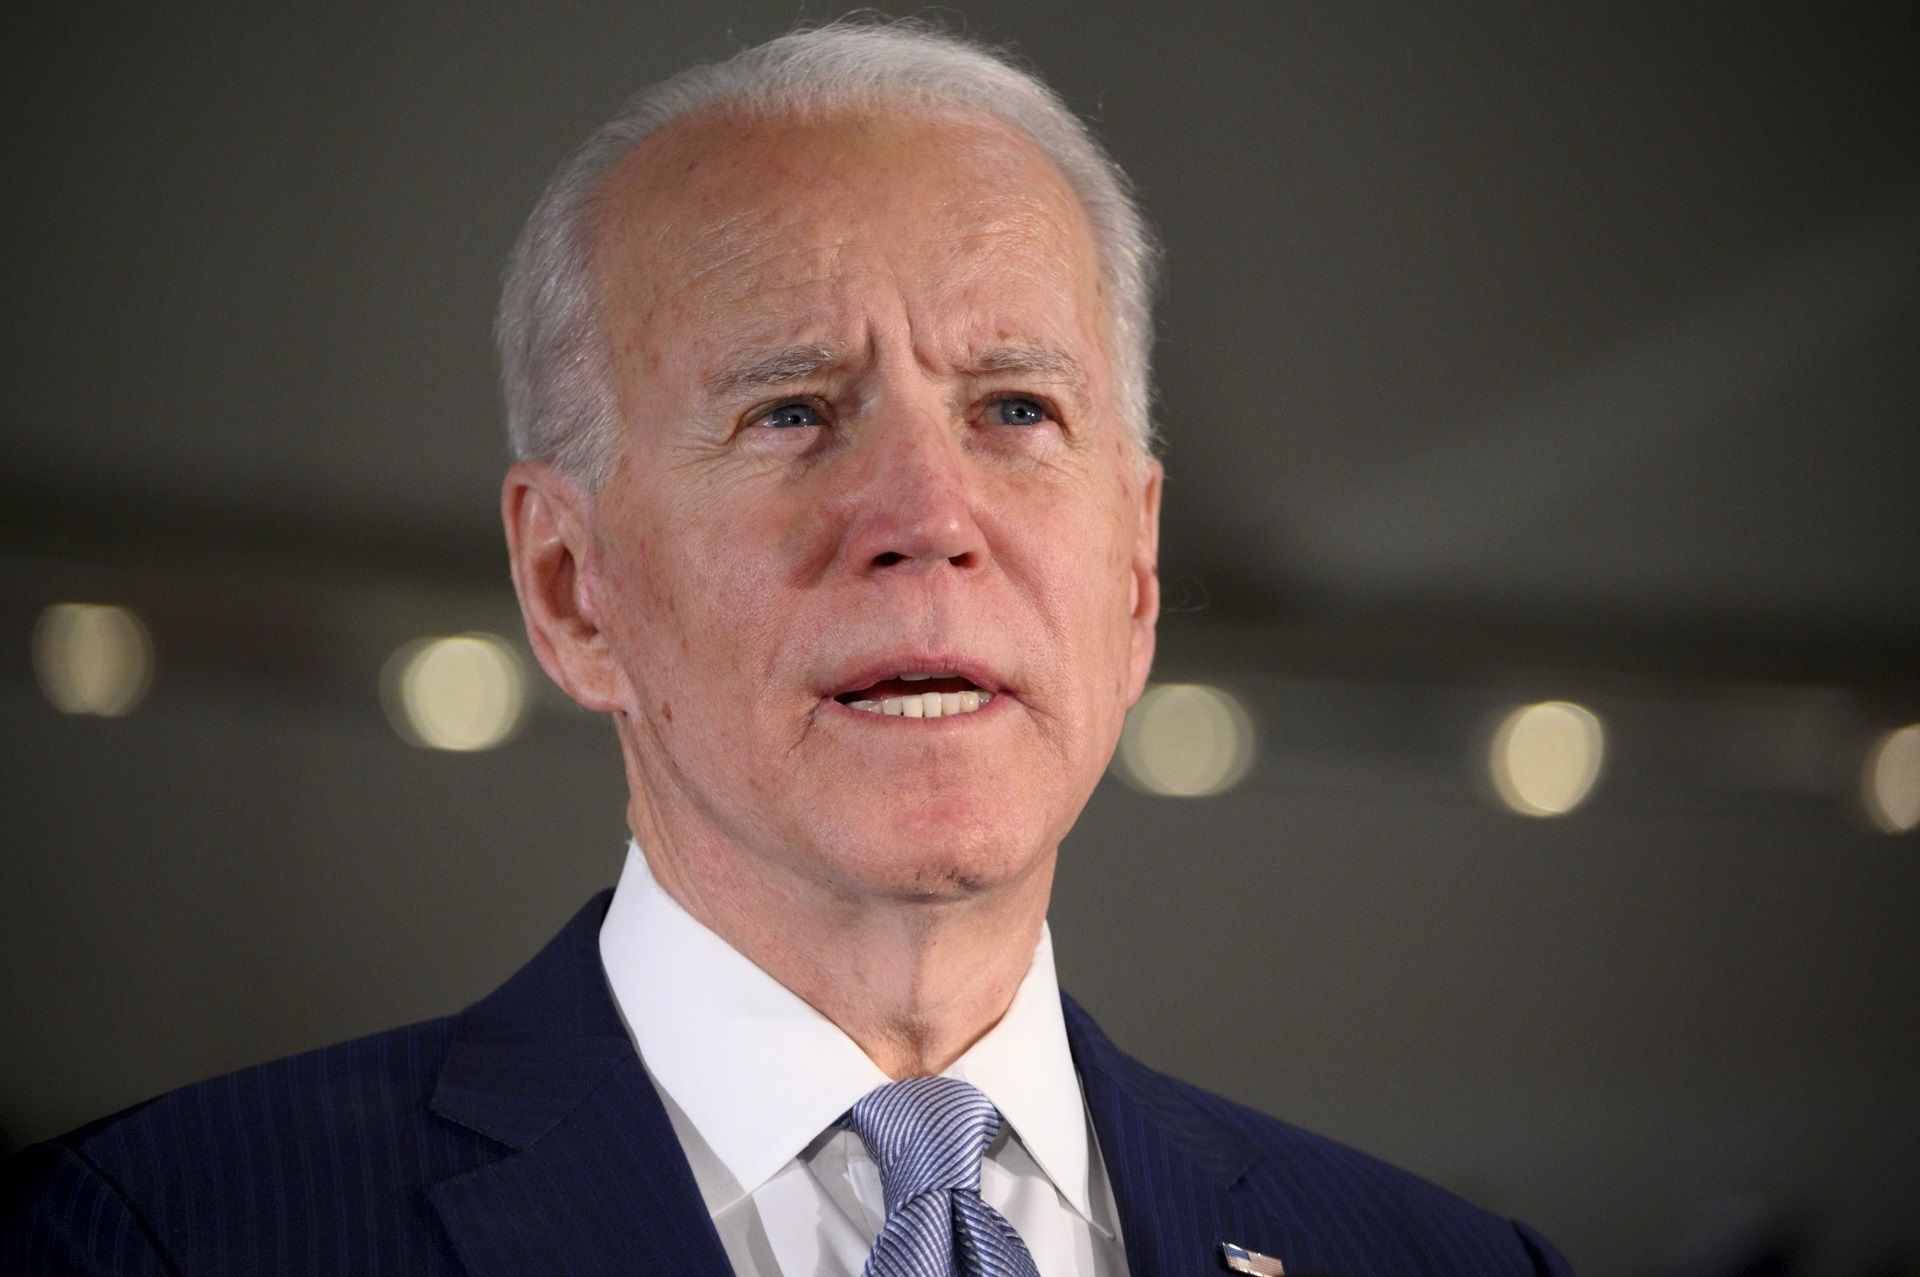 Biden camp says sexual assault accusation 'false,' calls on press to investigate